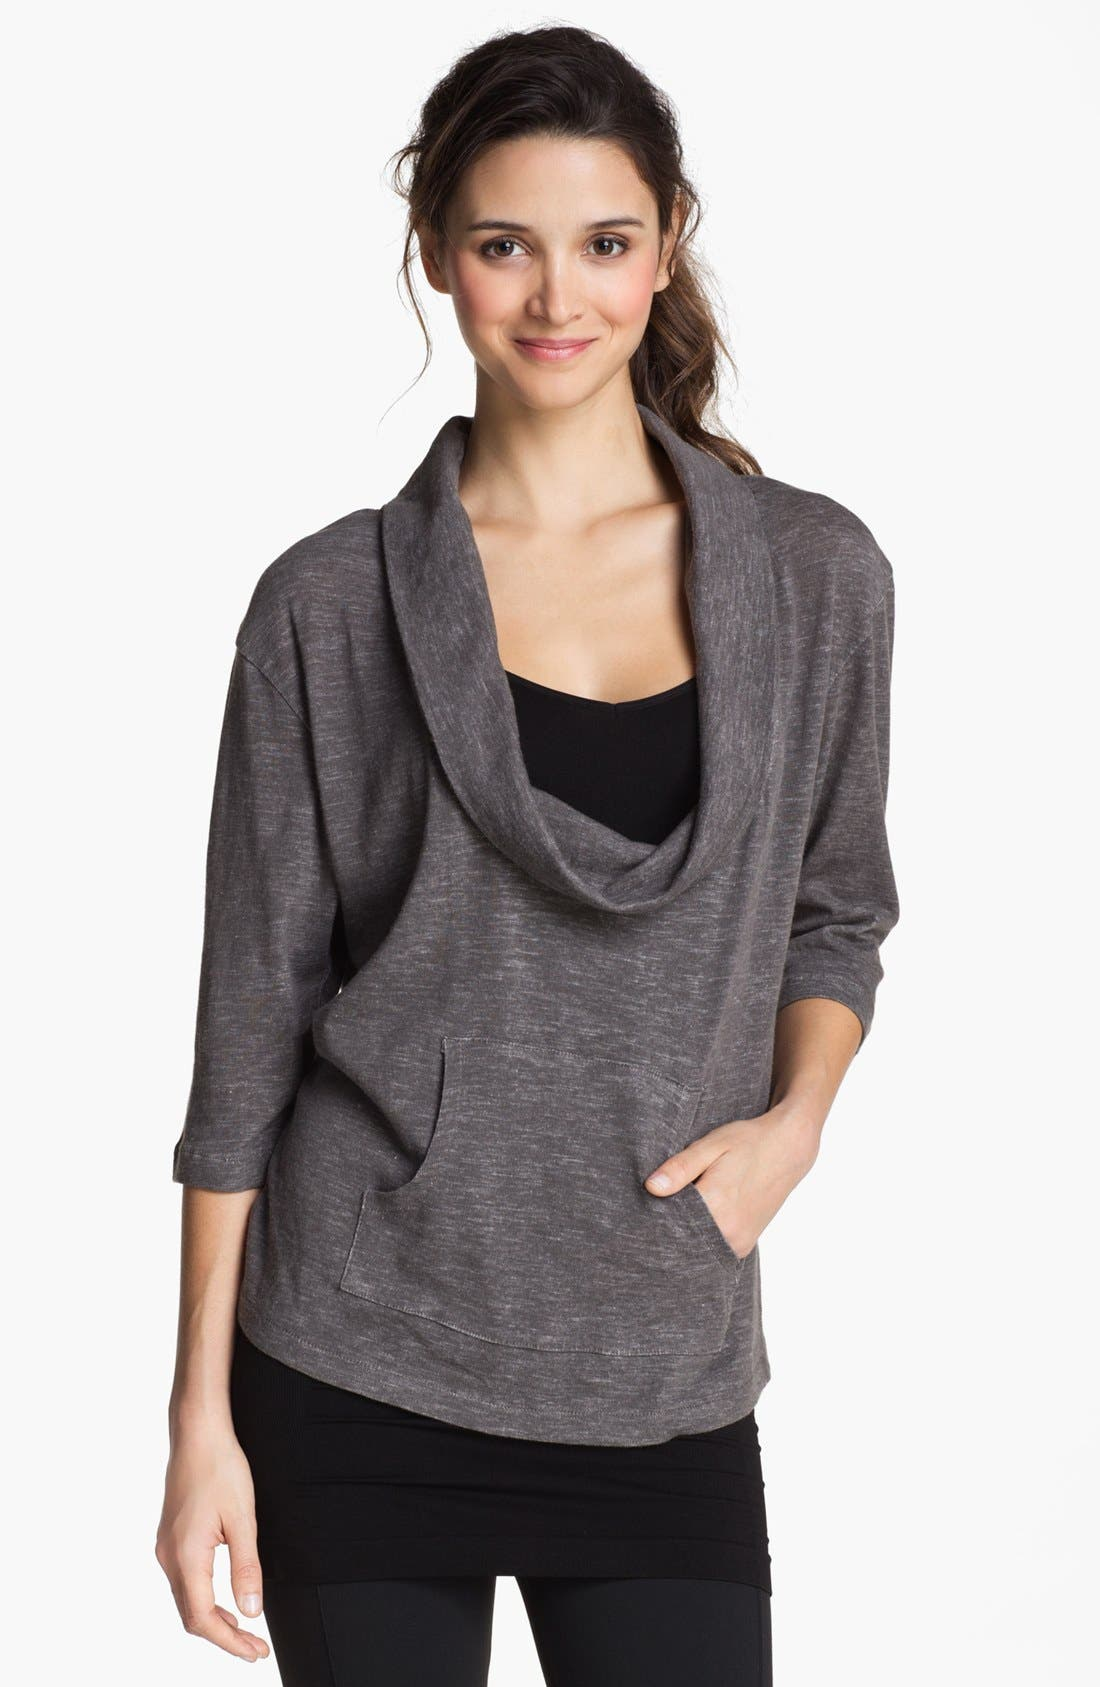 Alternate Image 1 Selected - Alo 'Lucidity' Drape Neck Top